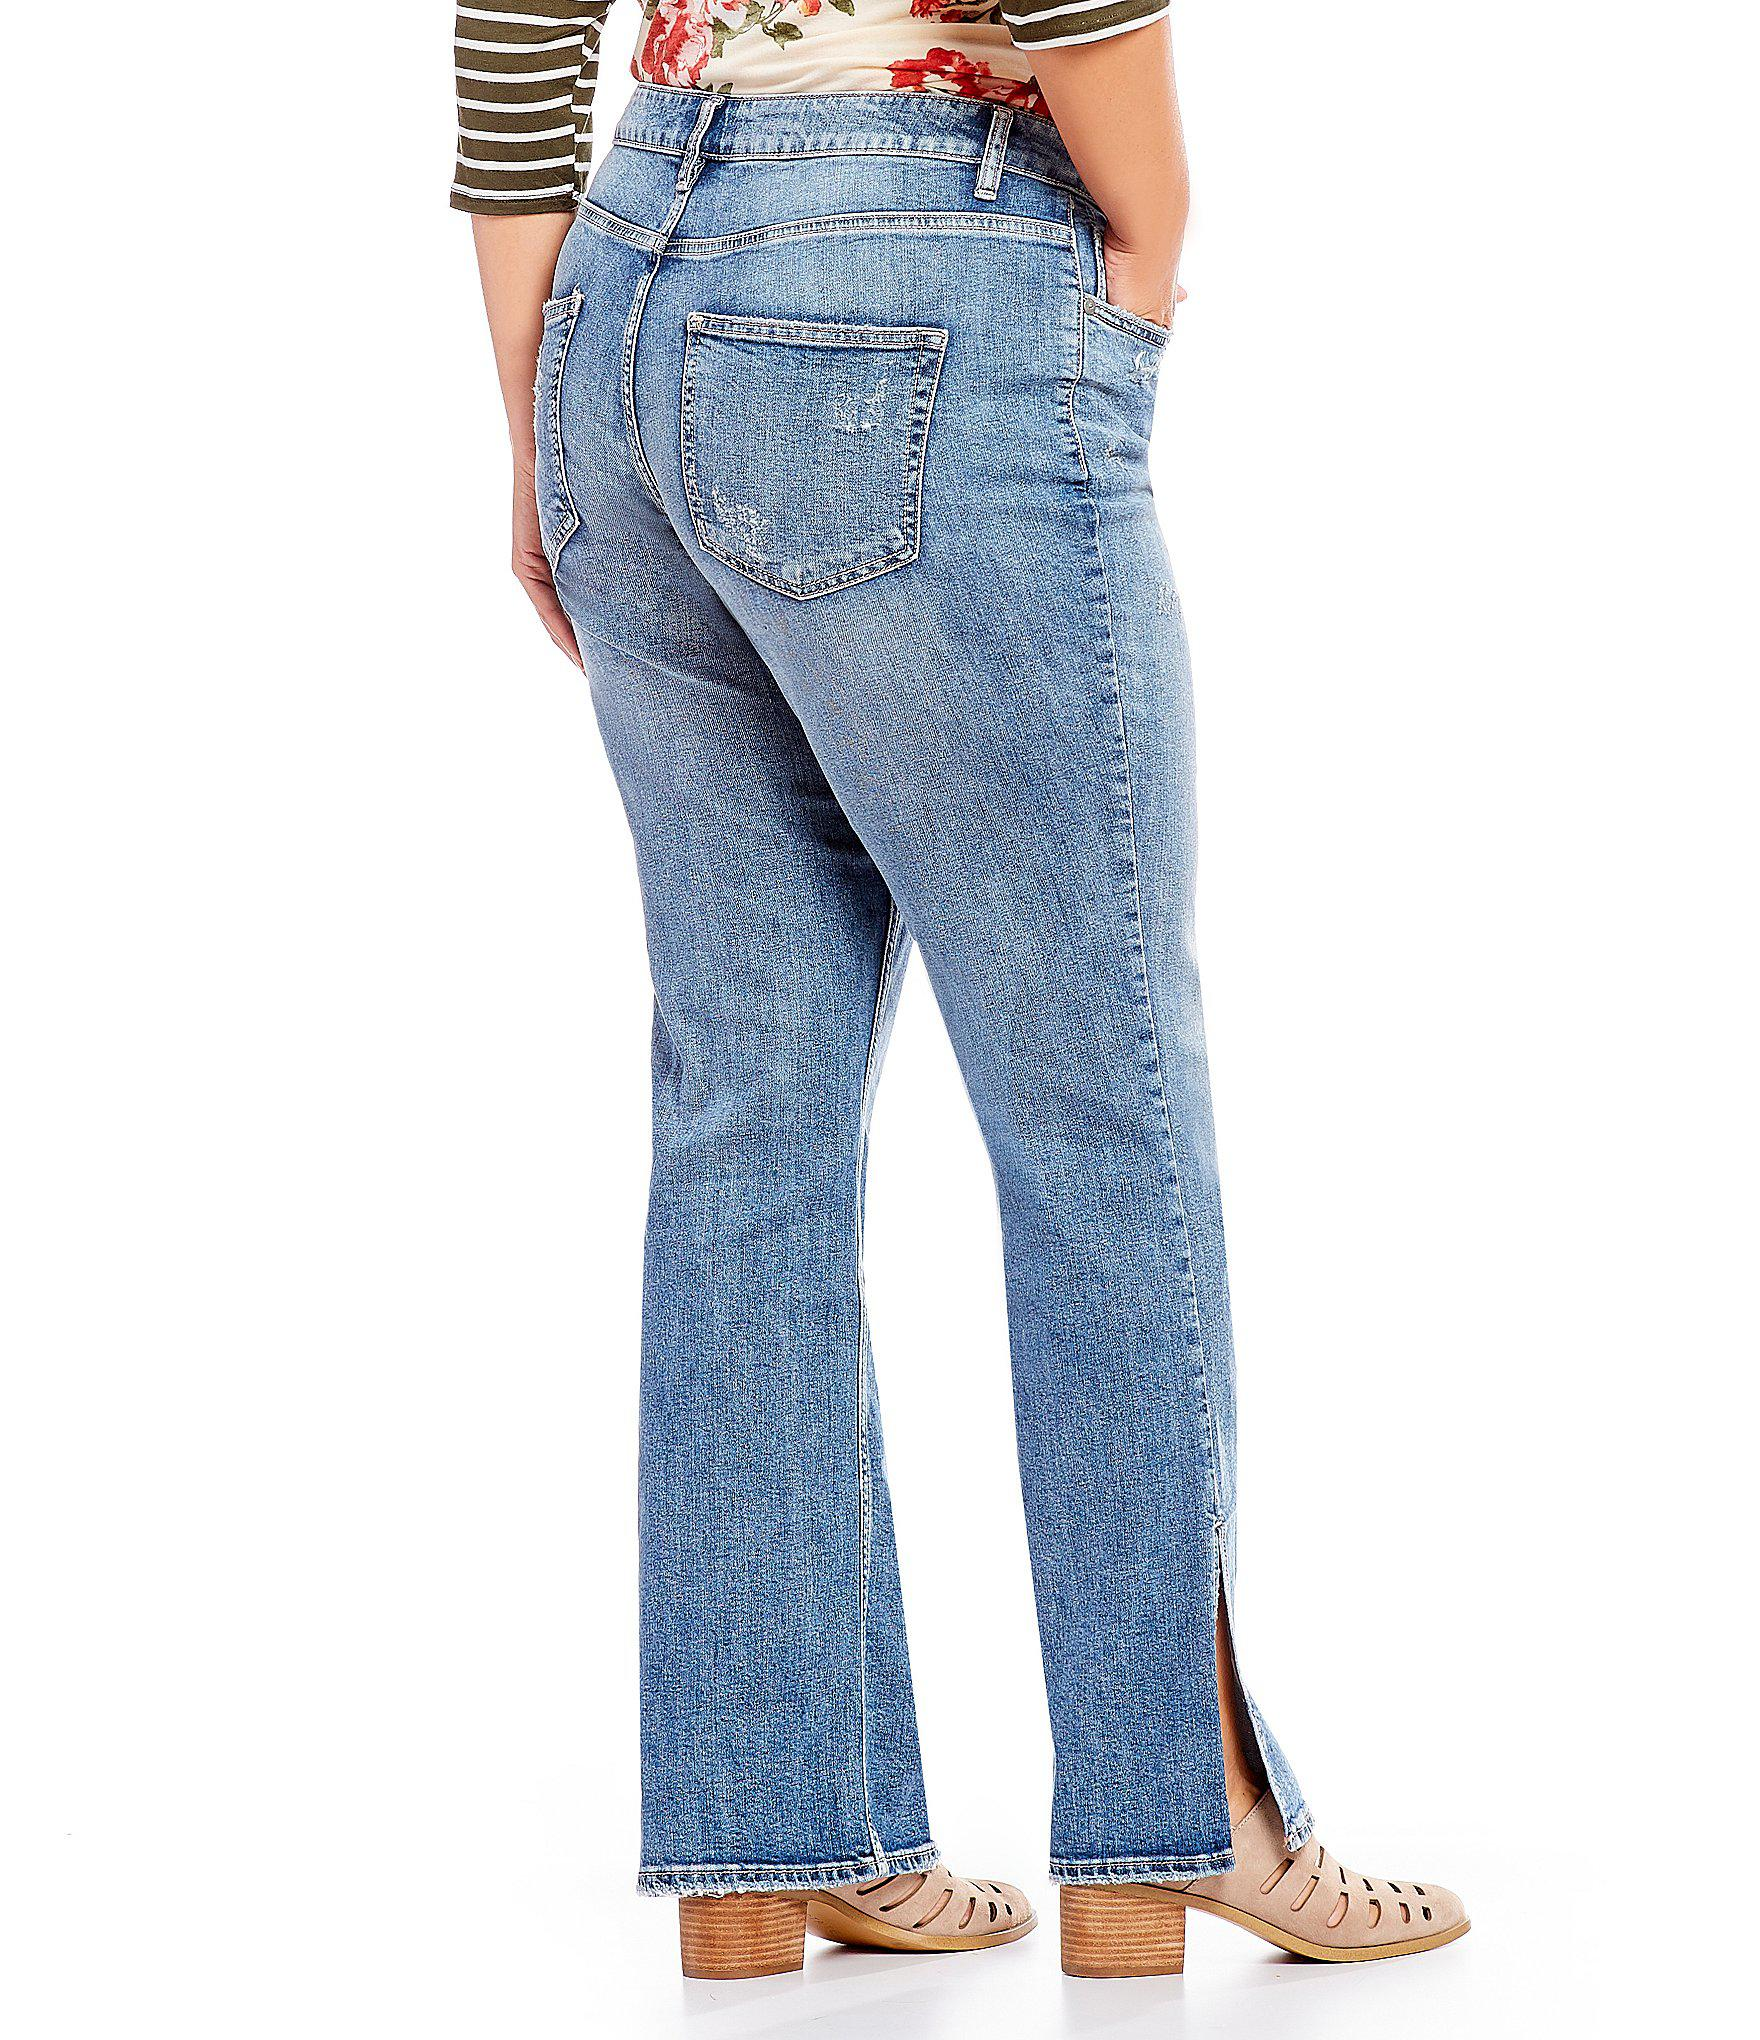 16a2292a2ee Lyst - Silver Jeans Co. Plus Avery Ultra Curvy Boot Cut Jean in Blue